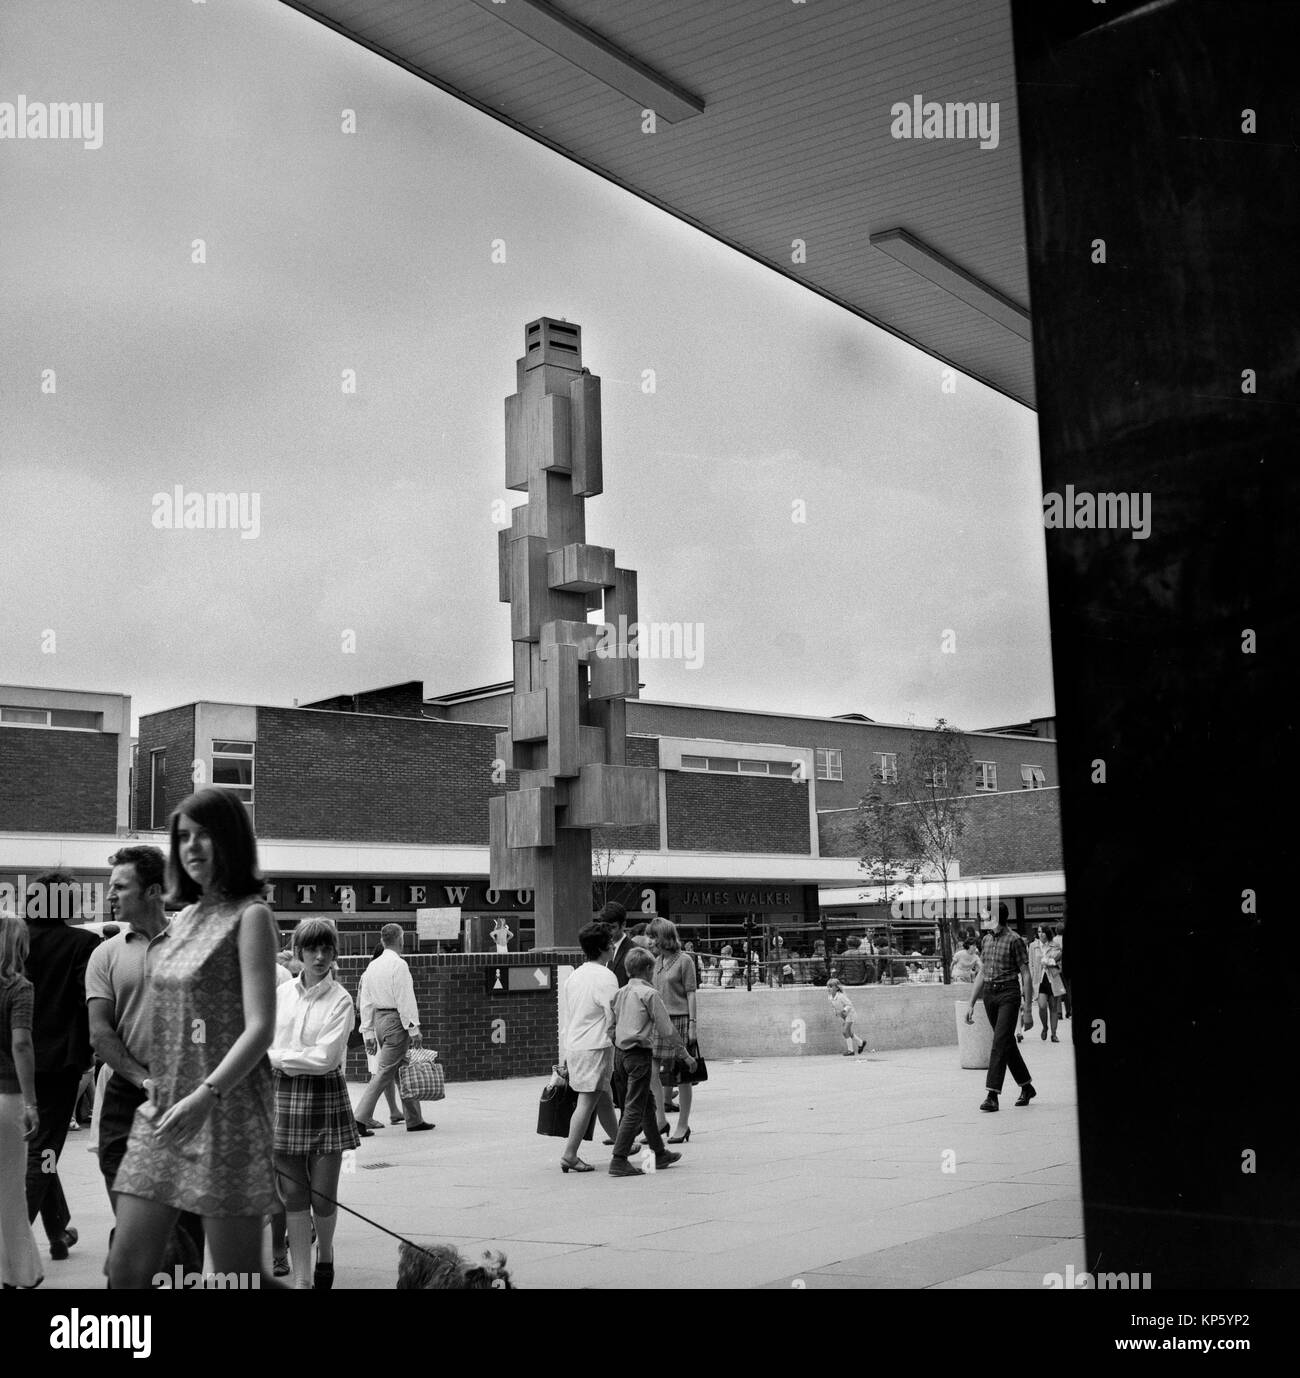 Romford Essex England. Photographed July 1970 but scans made in 2017 Small market town to the east of London embraces - Stock Image